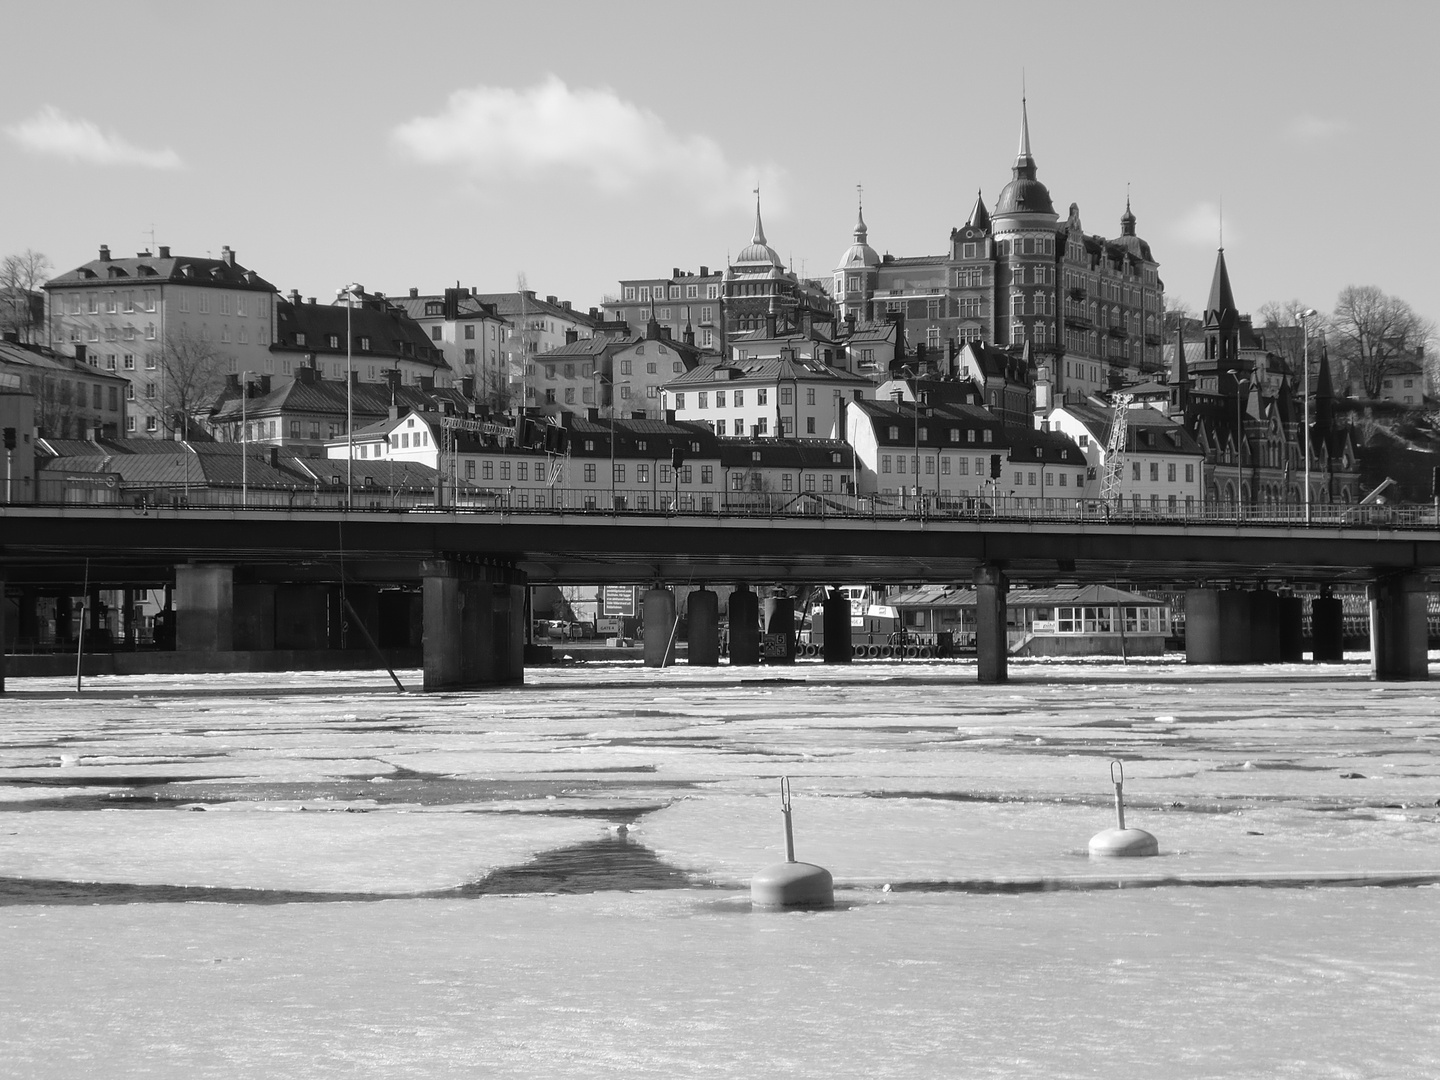 Stockholm in the winter